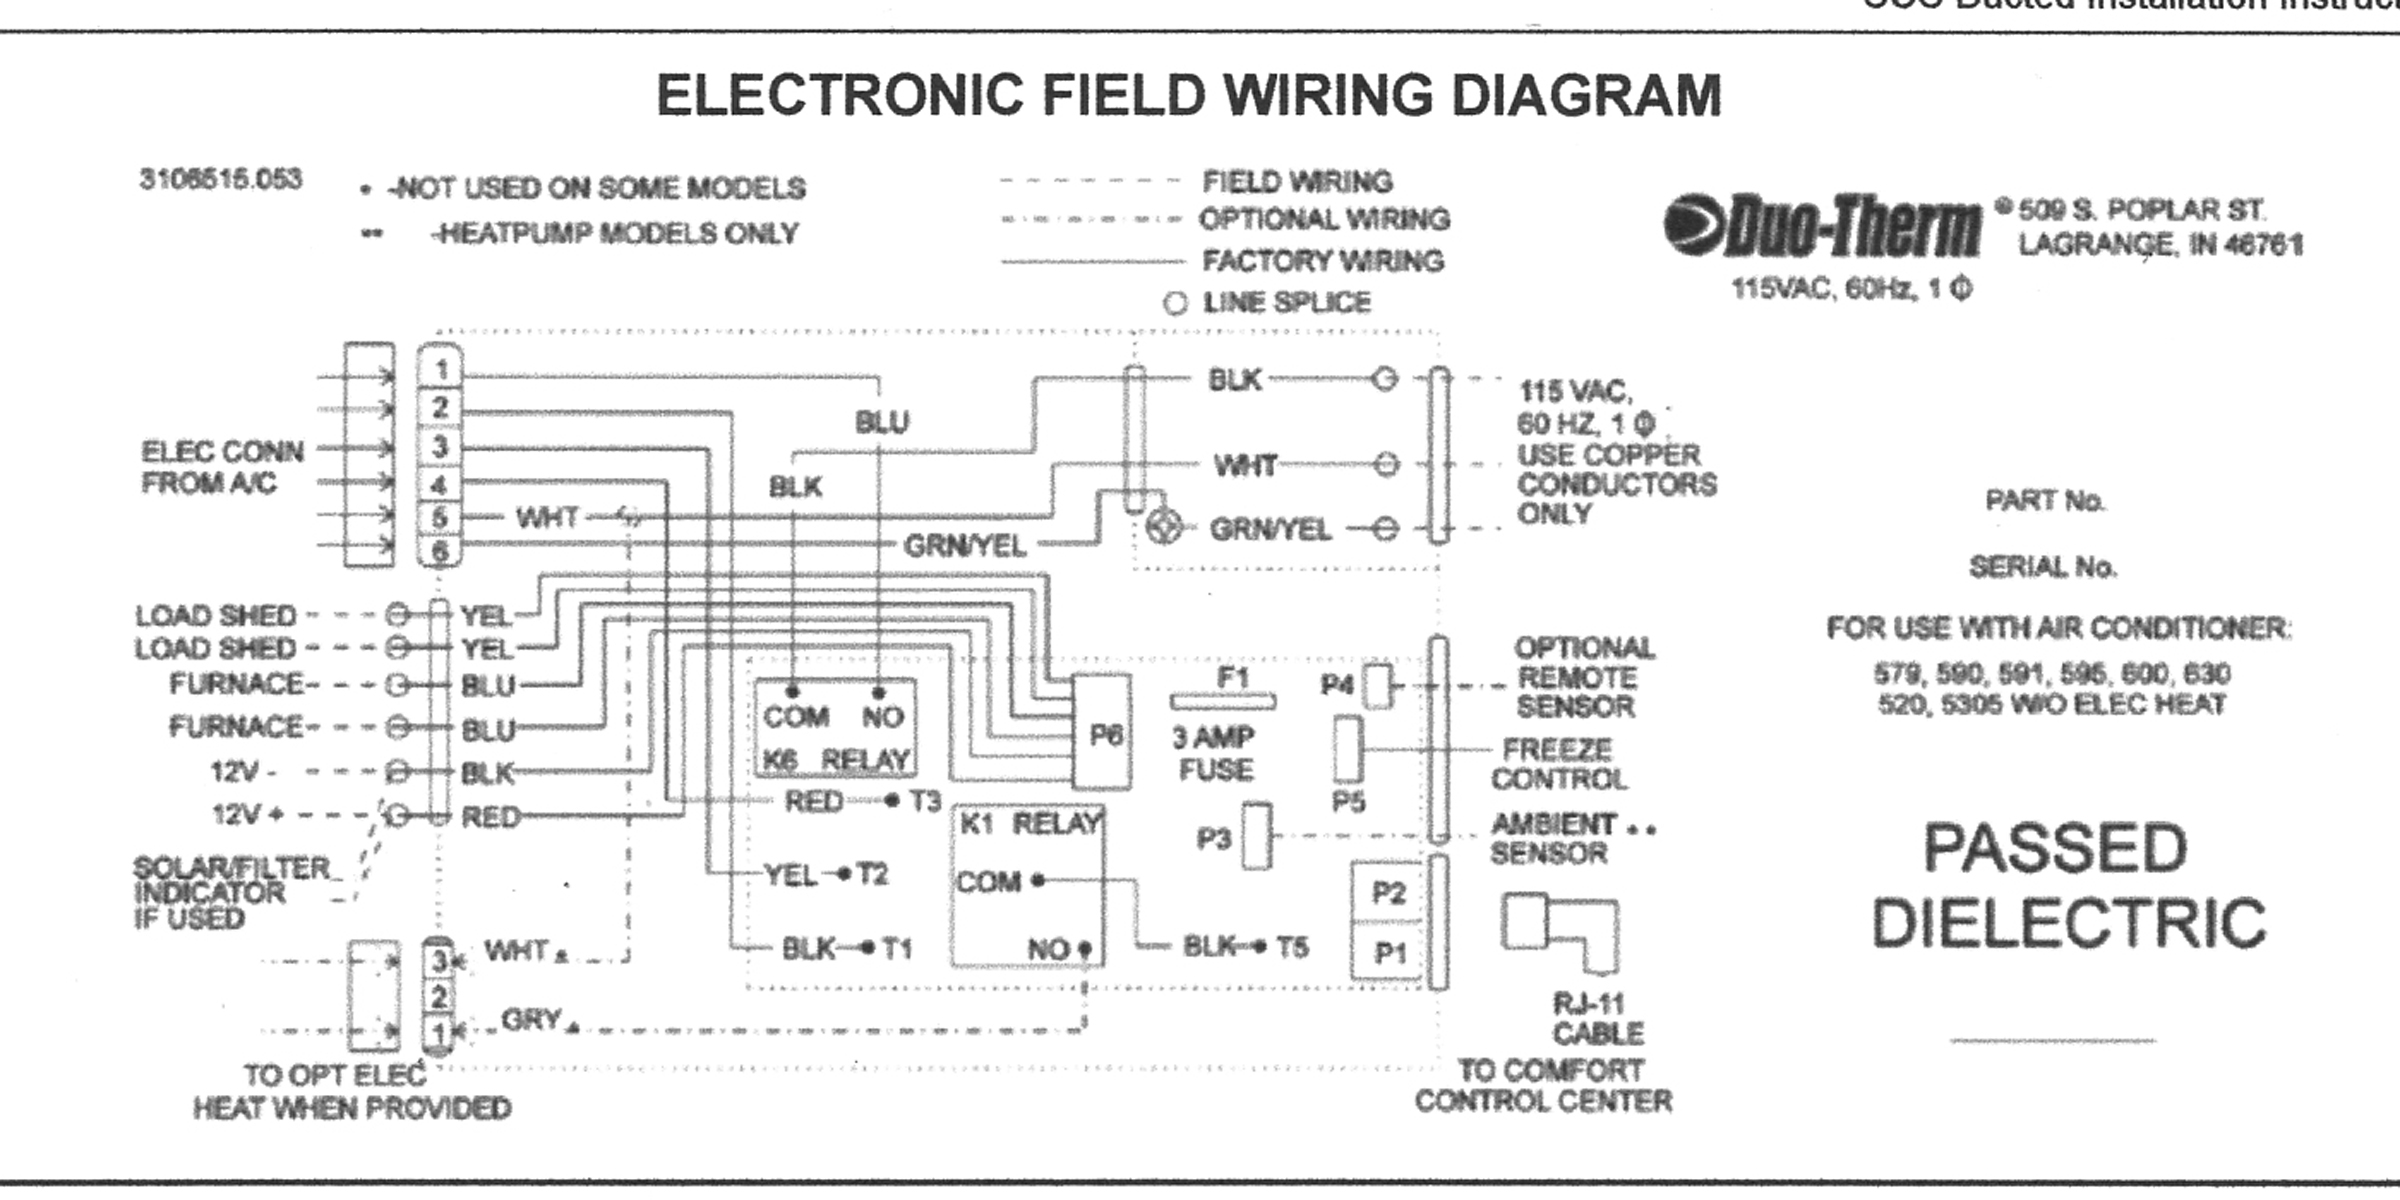 mobile home coleman furnace thermostat wiring diagram my model 2540 atwood furnace will not start. the fan just ...